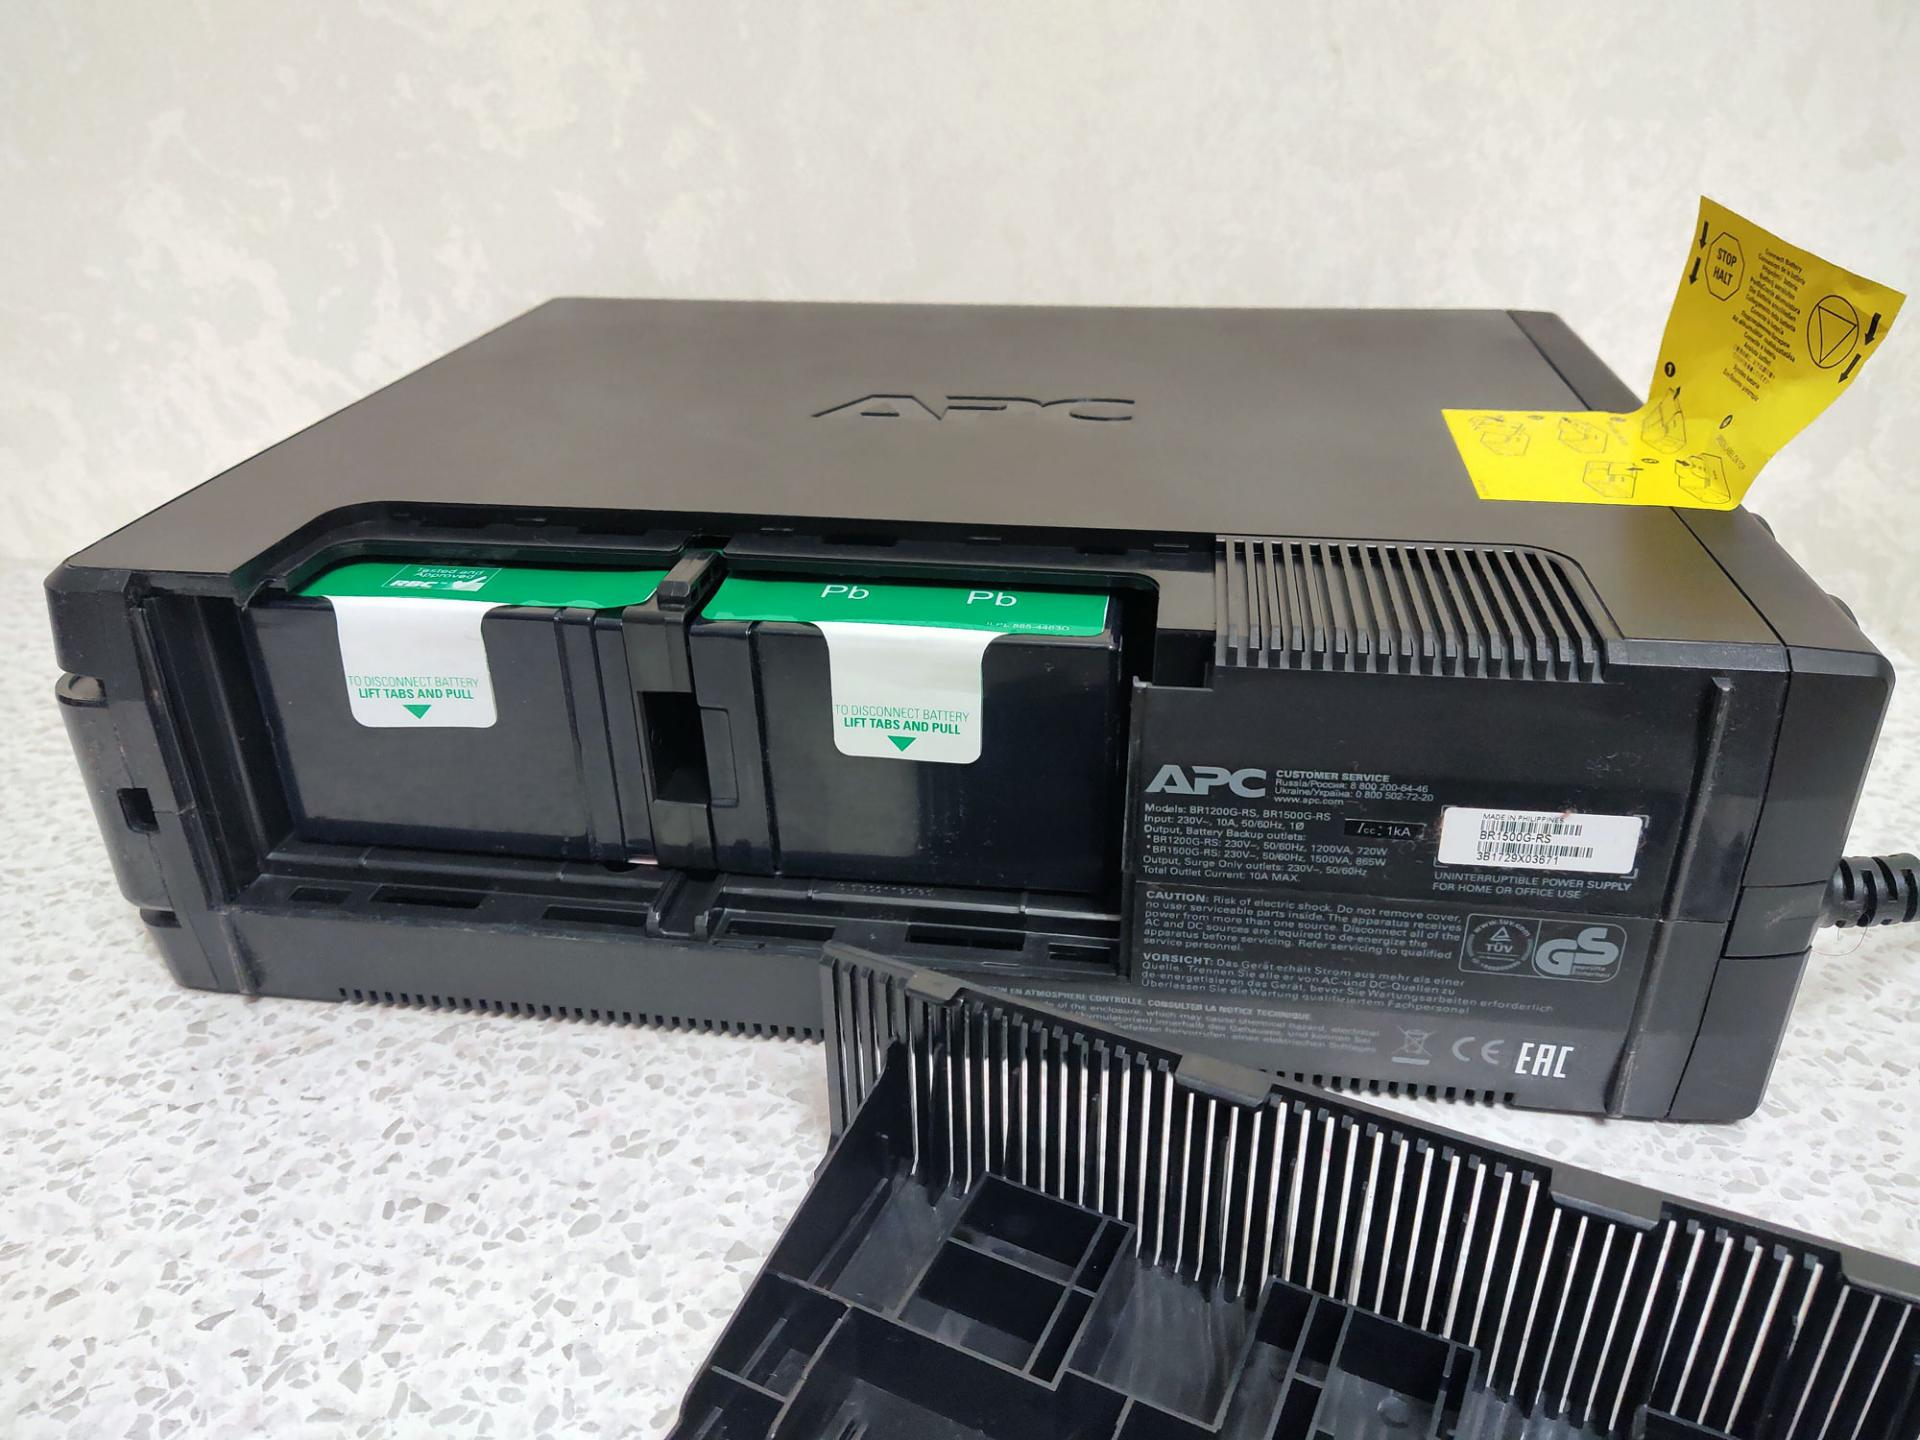 Обзор ИБП APC by Schneider Electric Back-UPS Pro BR1500G-RS